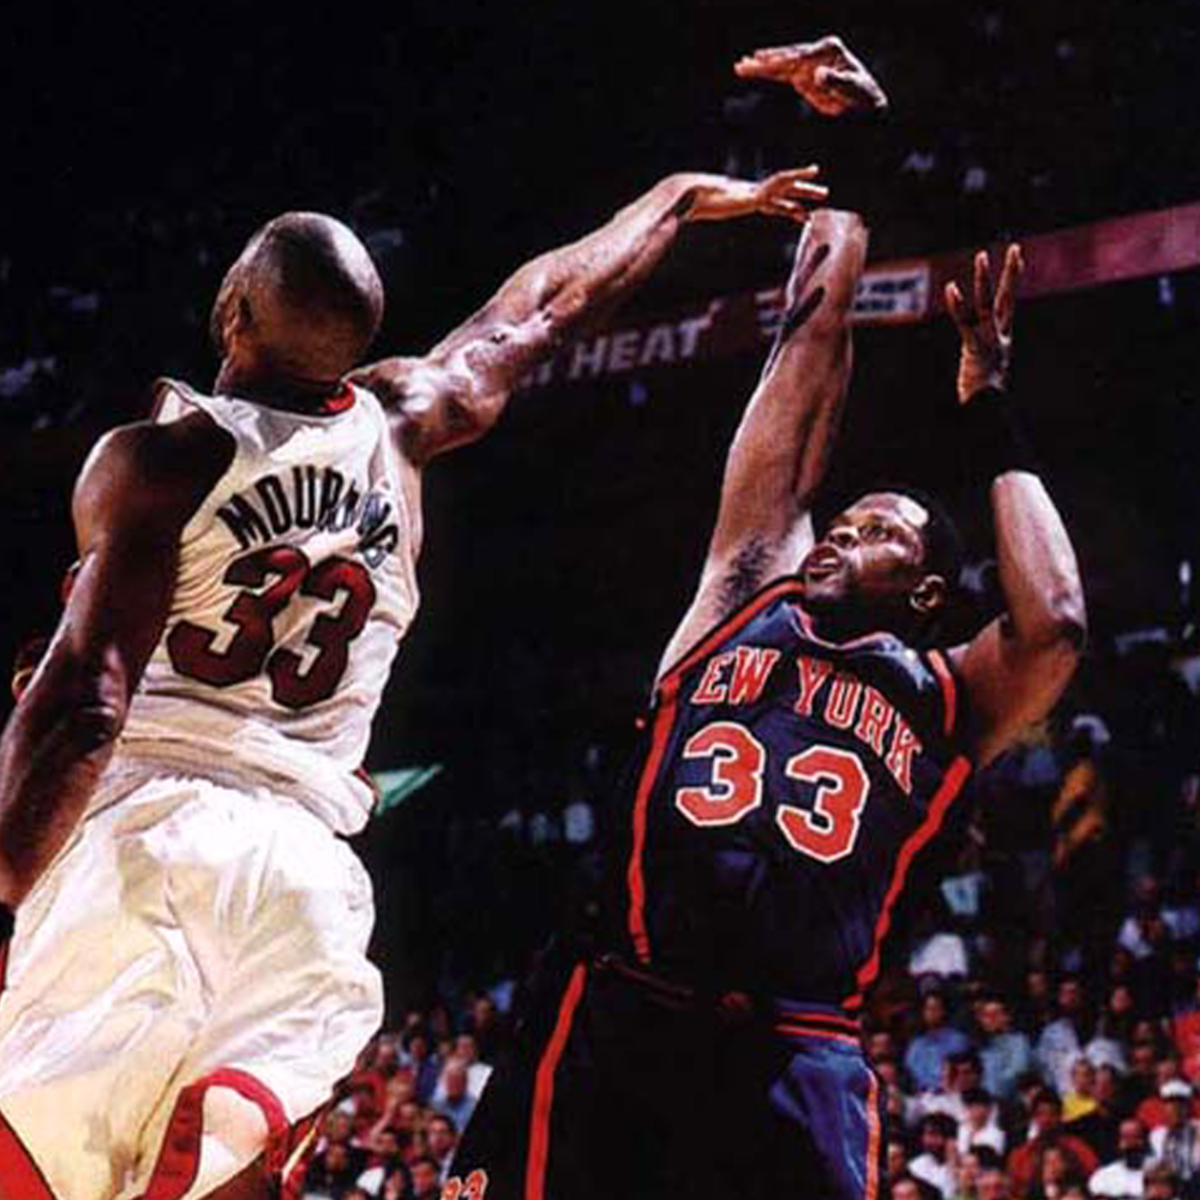 Patrick Ewing fade-away shot.